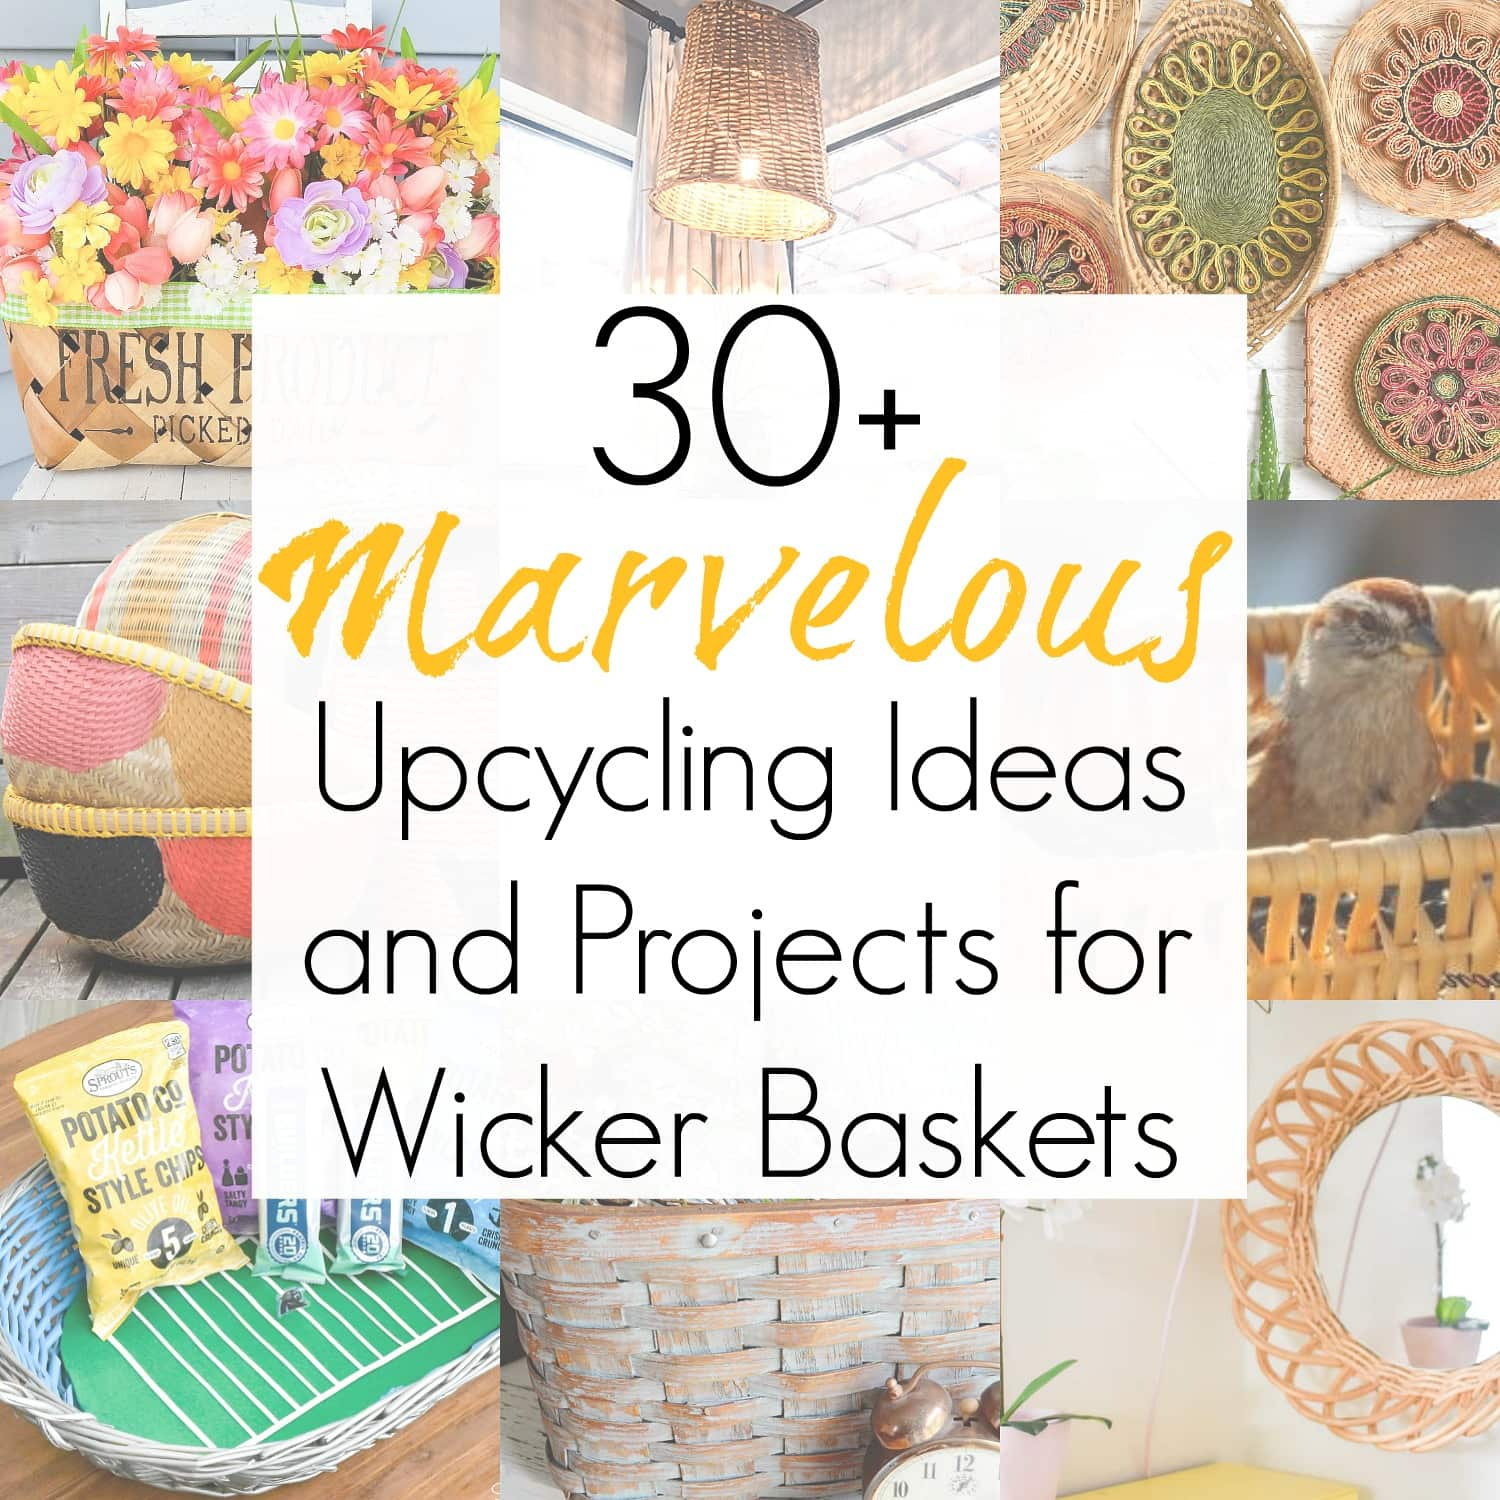 30+ Upcycling Ideas for Wicker Baskets